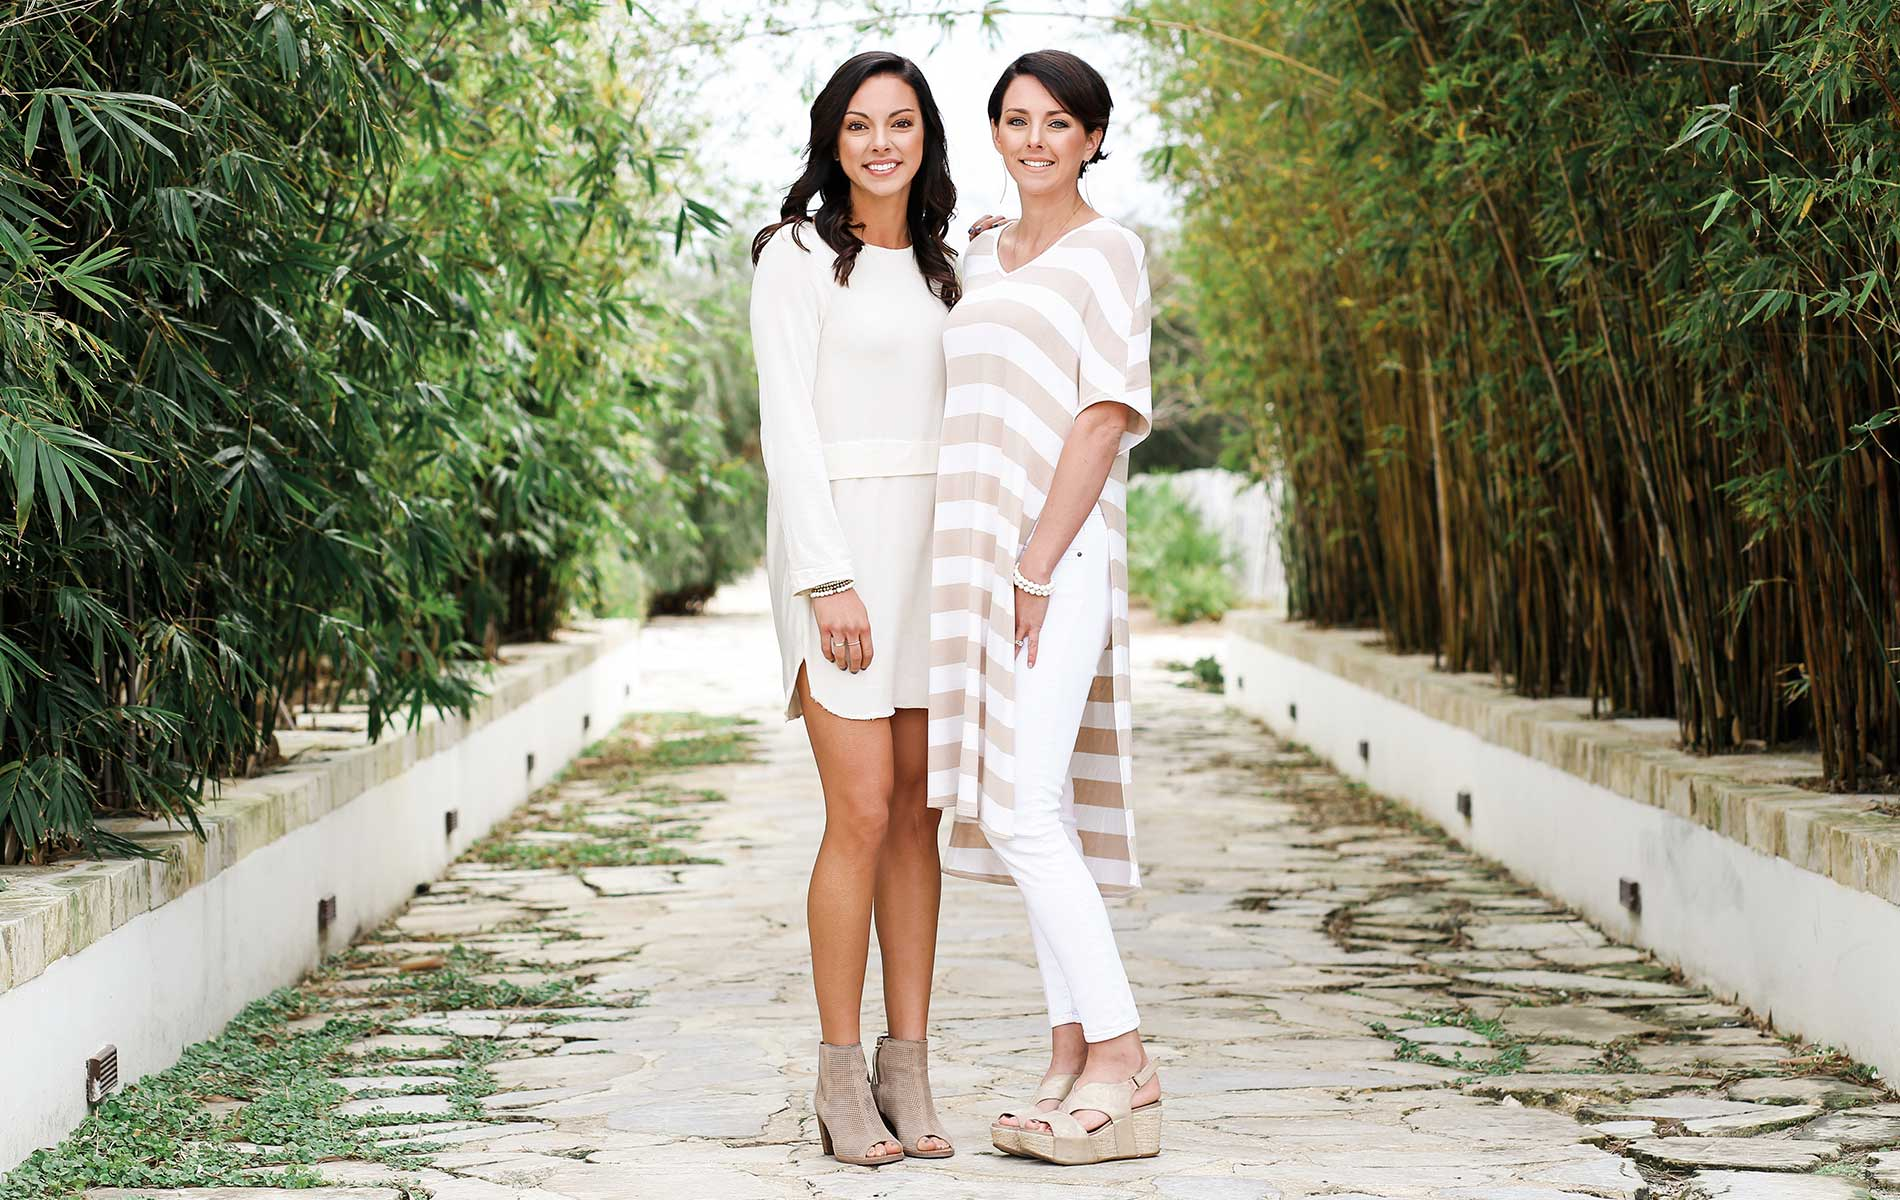 Sisters Katie Steelman and Abbie Boatwright, founders and owners of OKO Lifestyle